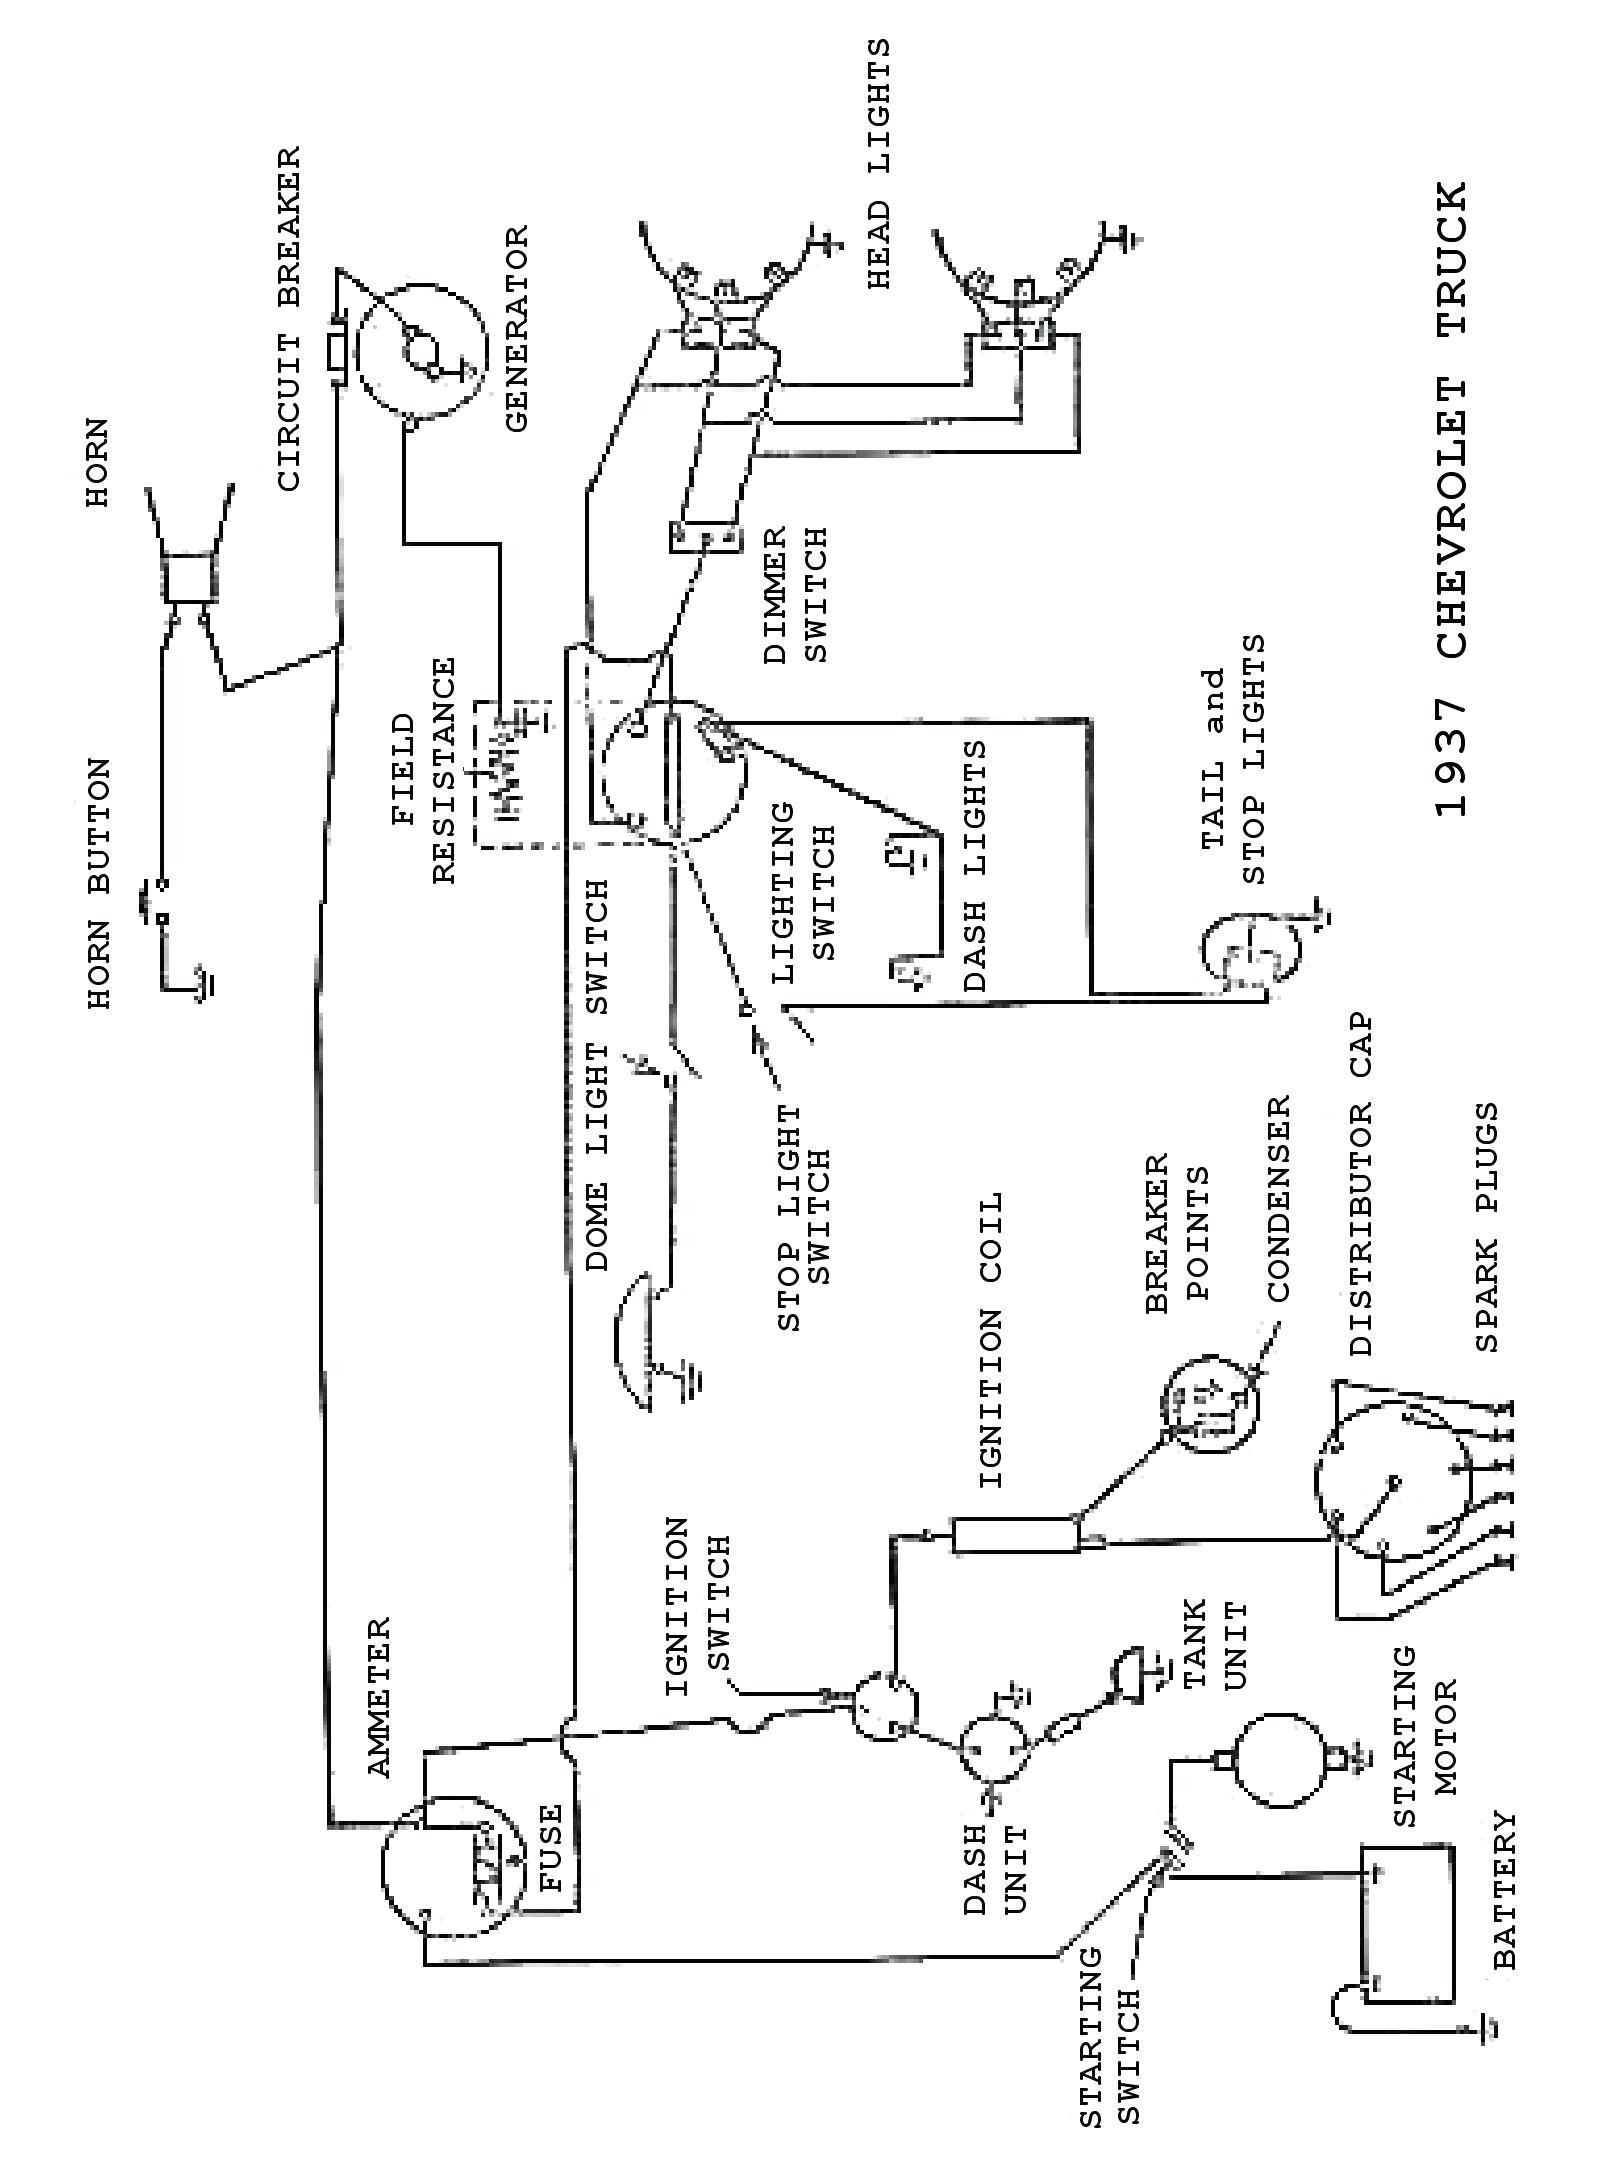 hight resolution of wiring diagram 24 volt 4010 electronic schematics collections john deere 4020 parts diagram 4020 24 volt wiring diagram